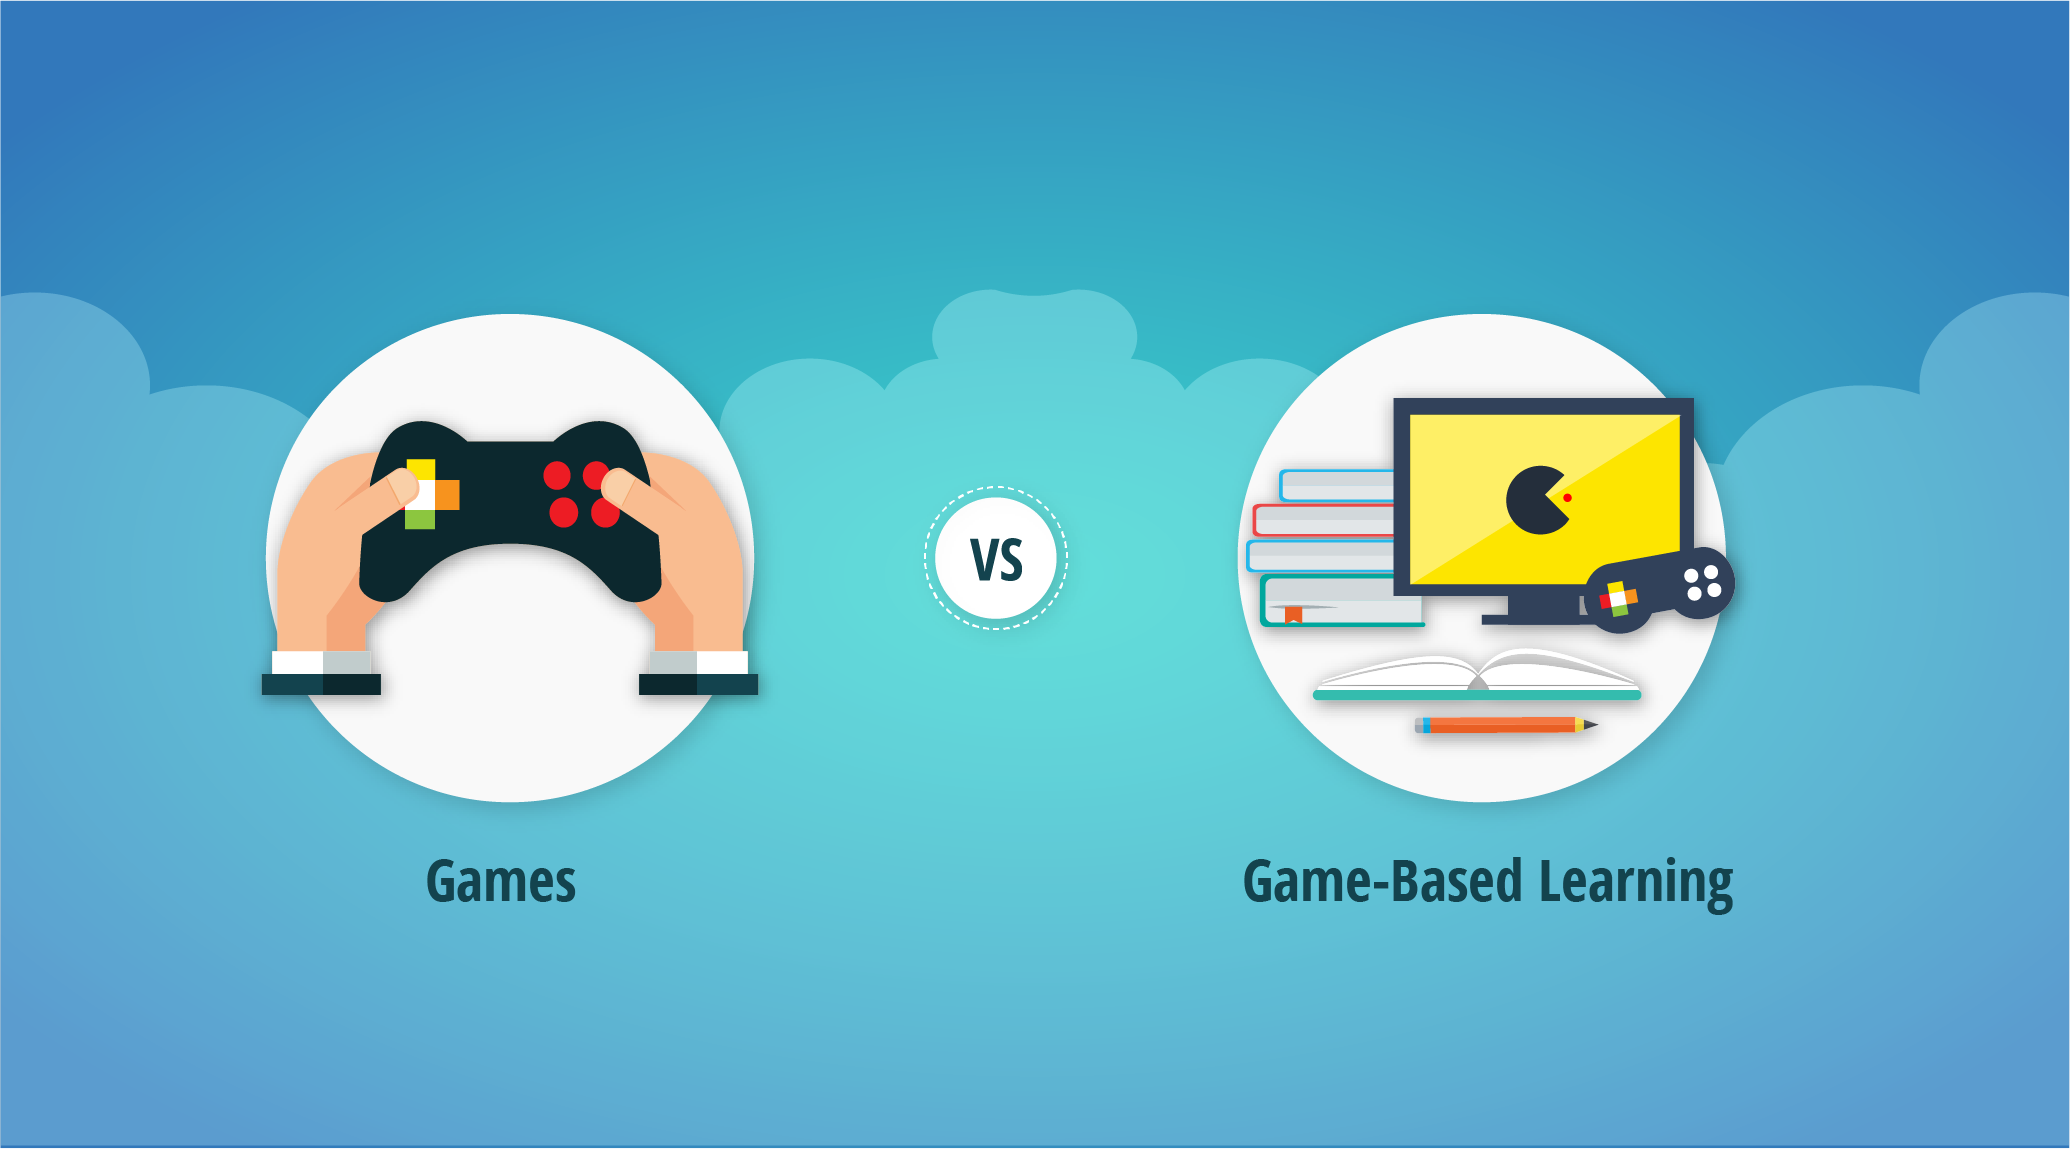 Games vs Game-Based Learning